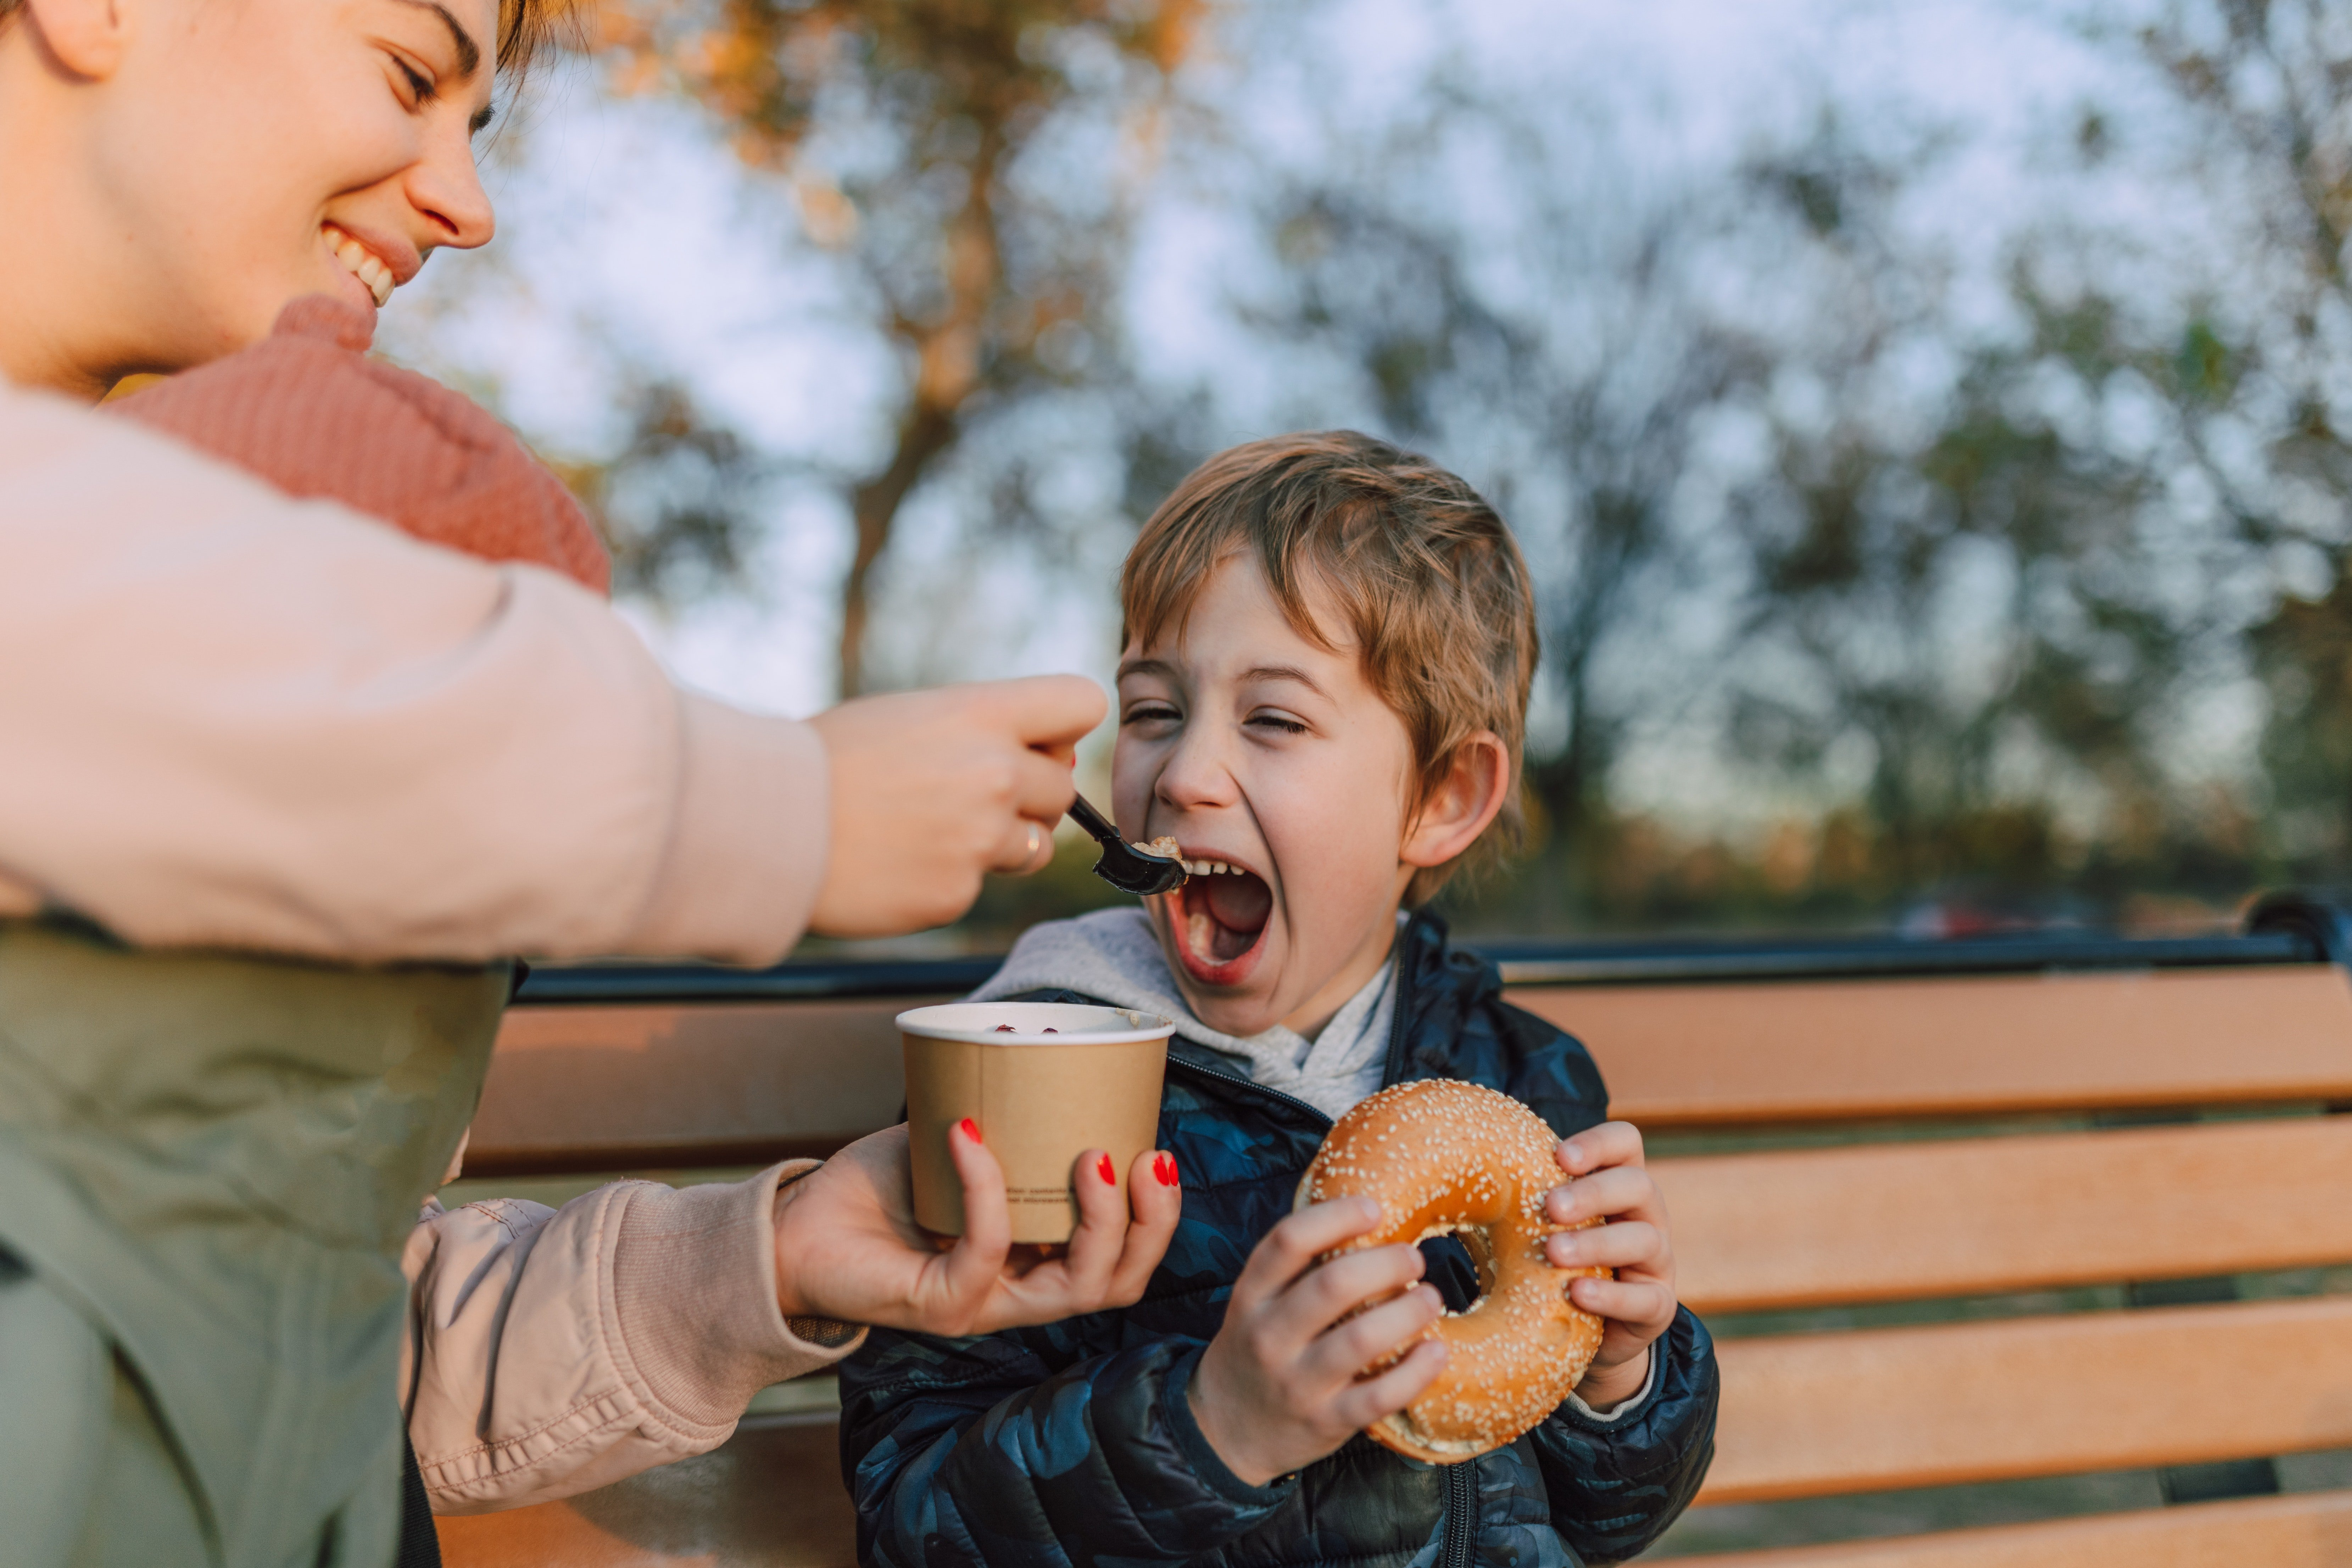 Johnny refused the second chocolate because he was looking forward to enjoying ice cream with his mother.   Photo: Pexels